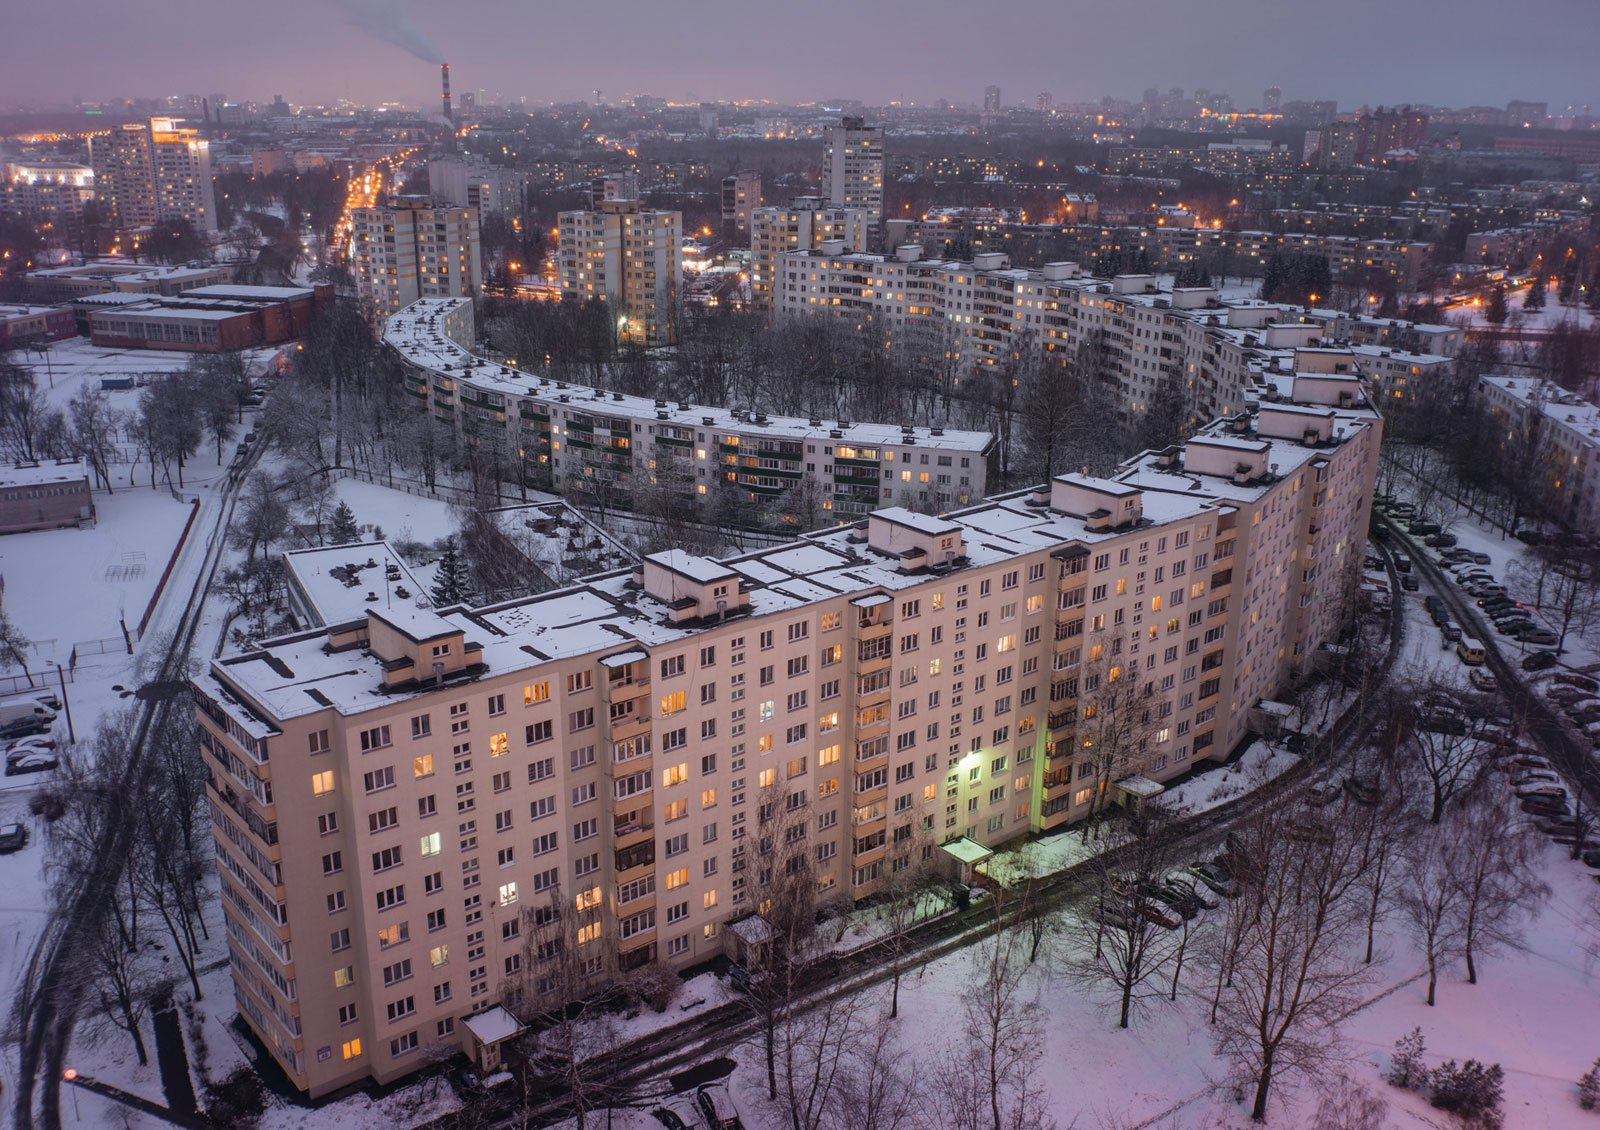 Moody postcards of sprawling Soviet housing blocks photographed at 'blue hour'